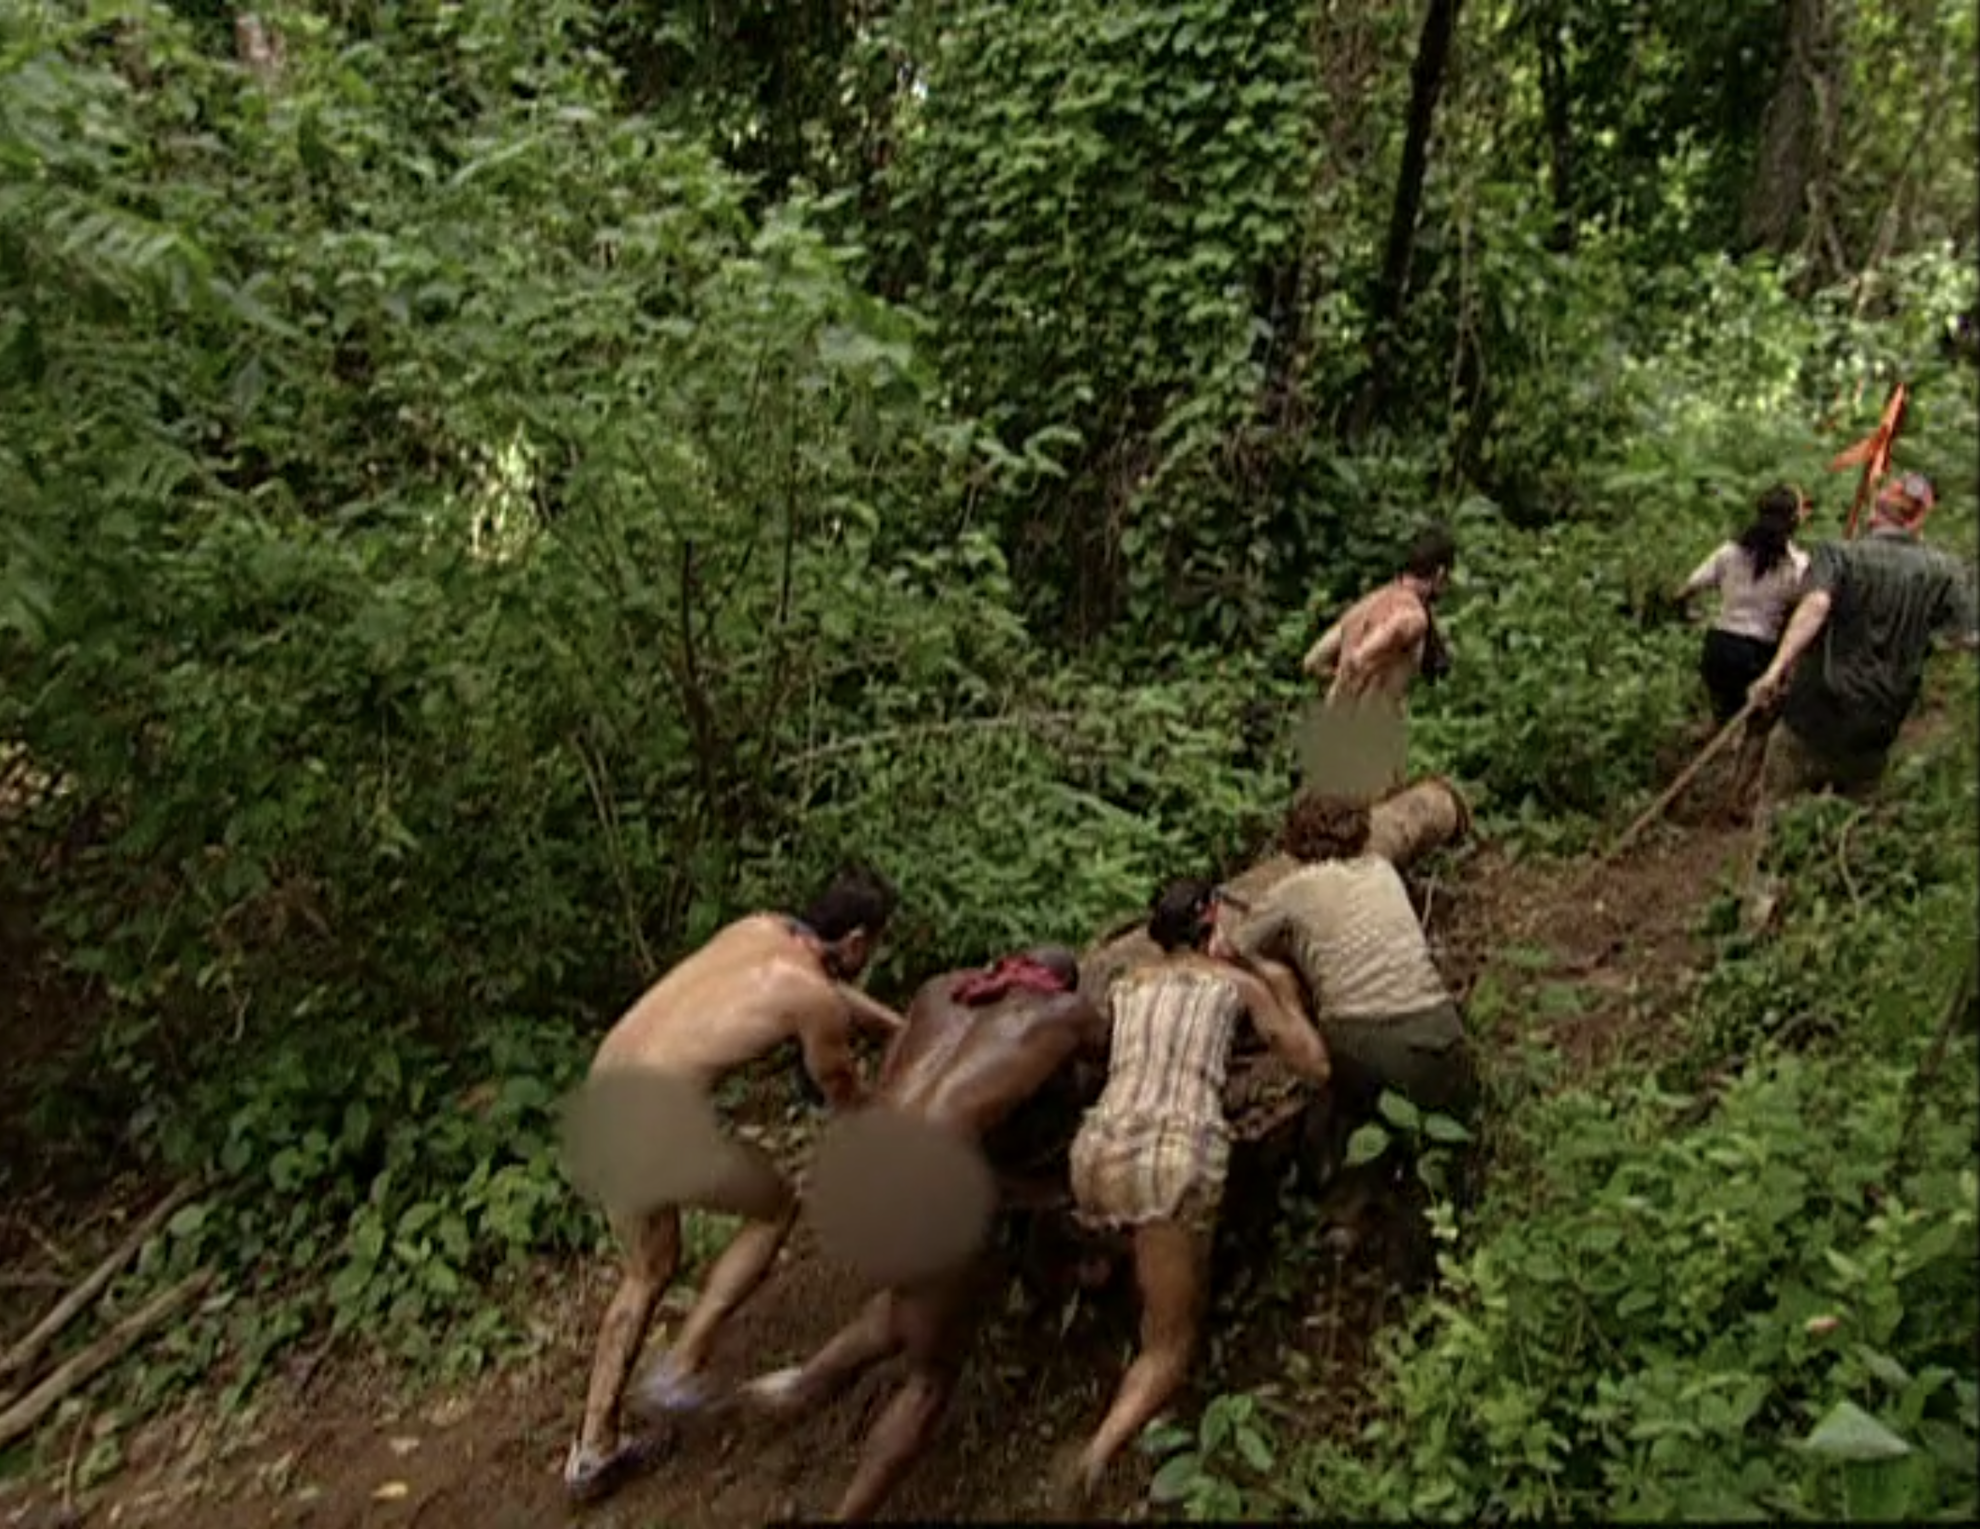 A tribe including three naked men push a cannon through the forest on Survivor: Pearl Islands